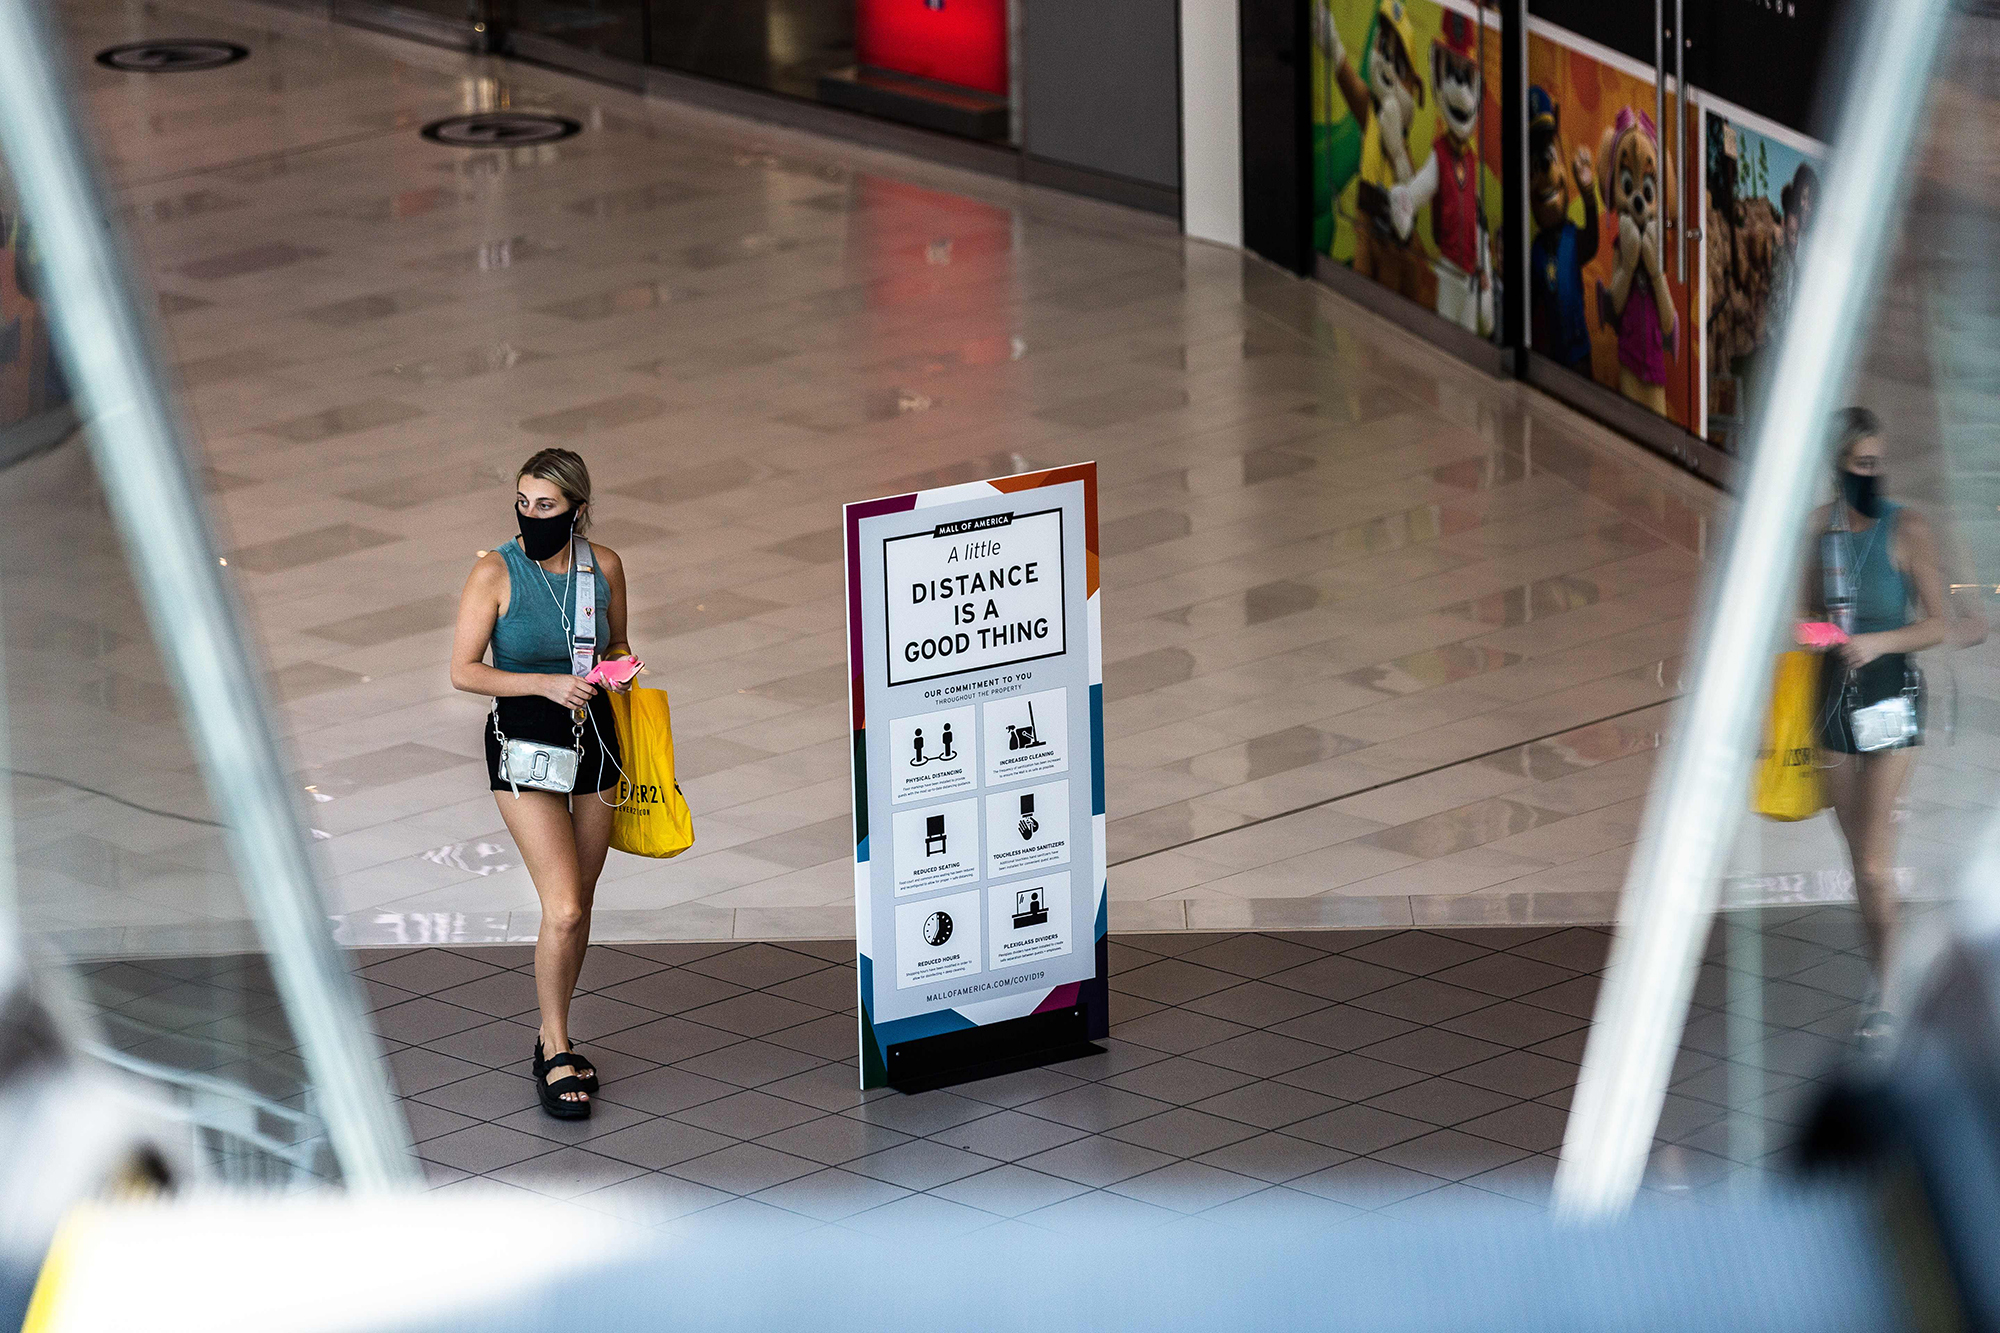 A shopper wearing a face mask walks through the Mall of America on June 16, 2020 in Bloomington, Minnesota, after some of the shops at the mall reopened on June 10.